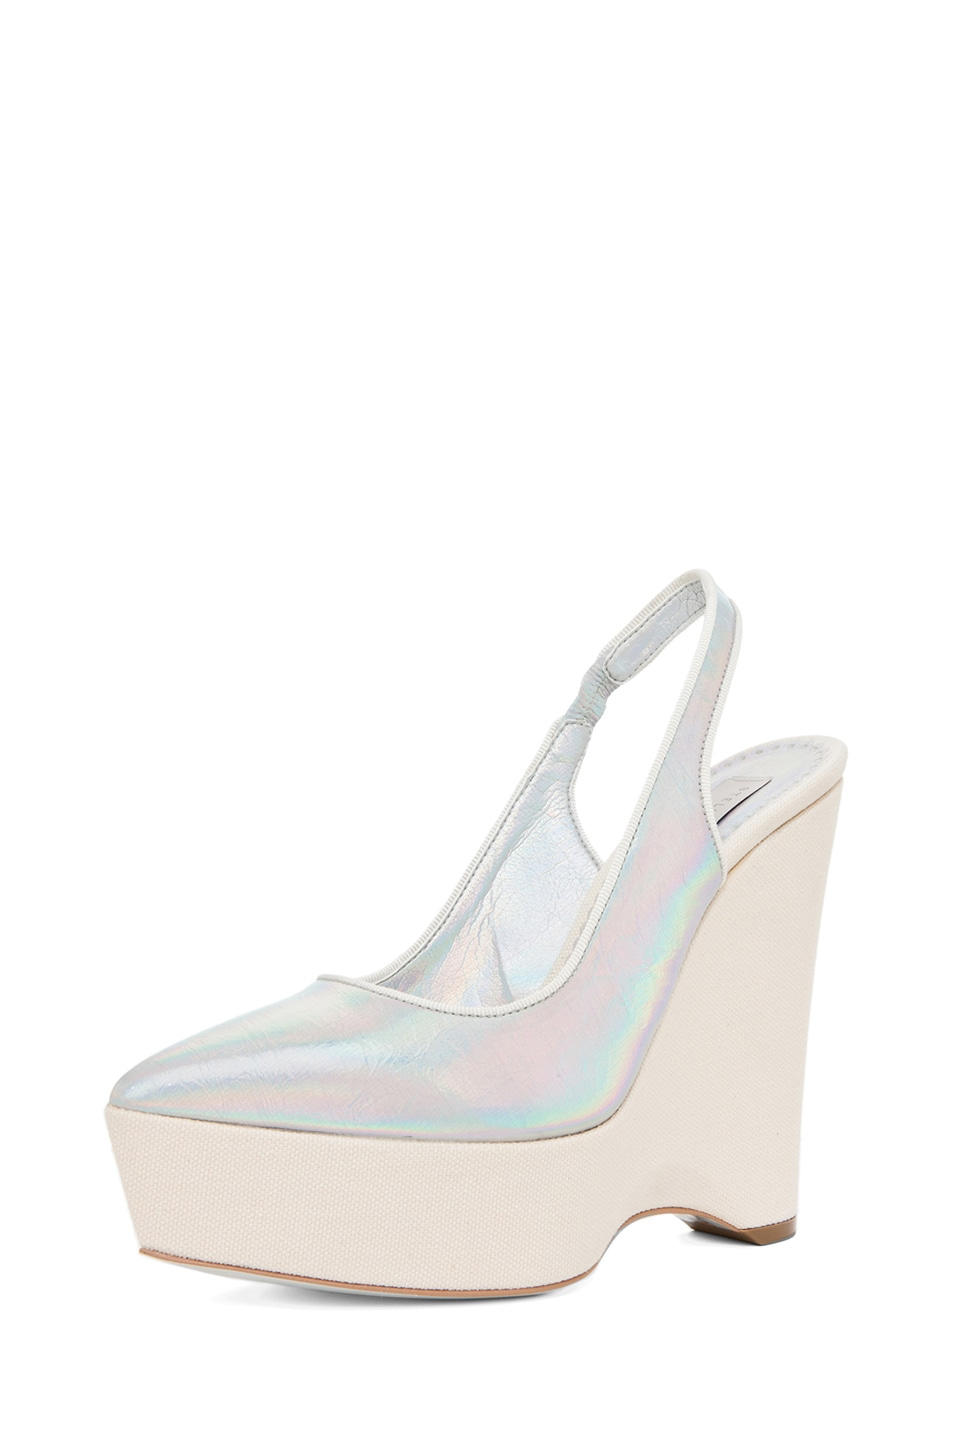 Image 2 of Stella McCartney Sling Back Wedge in Prisma & White